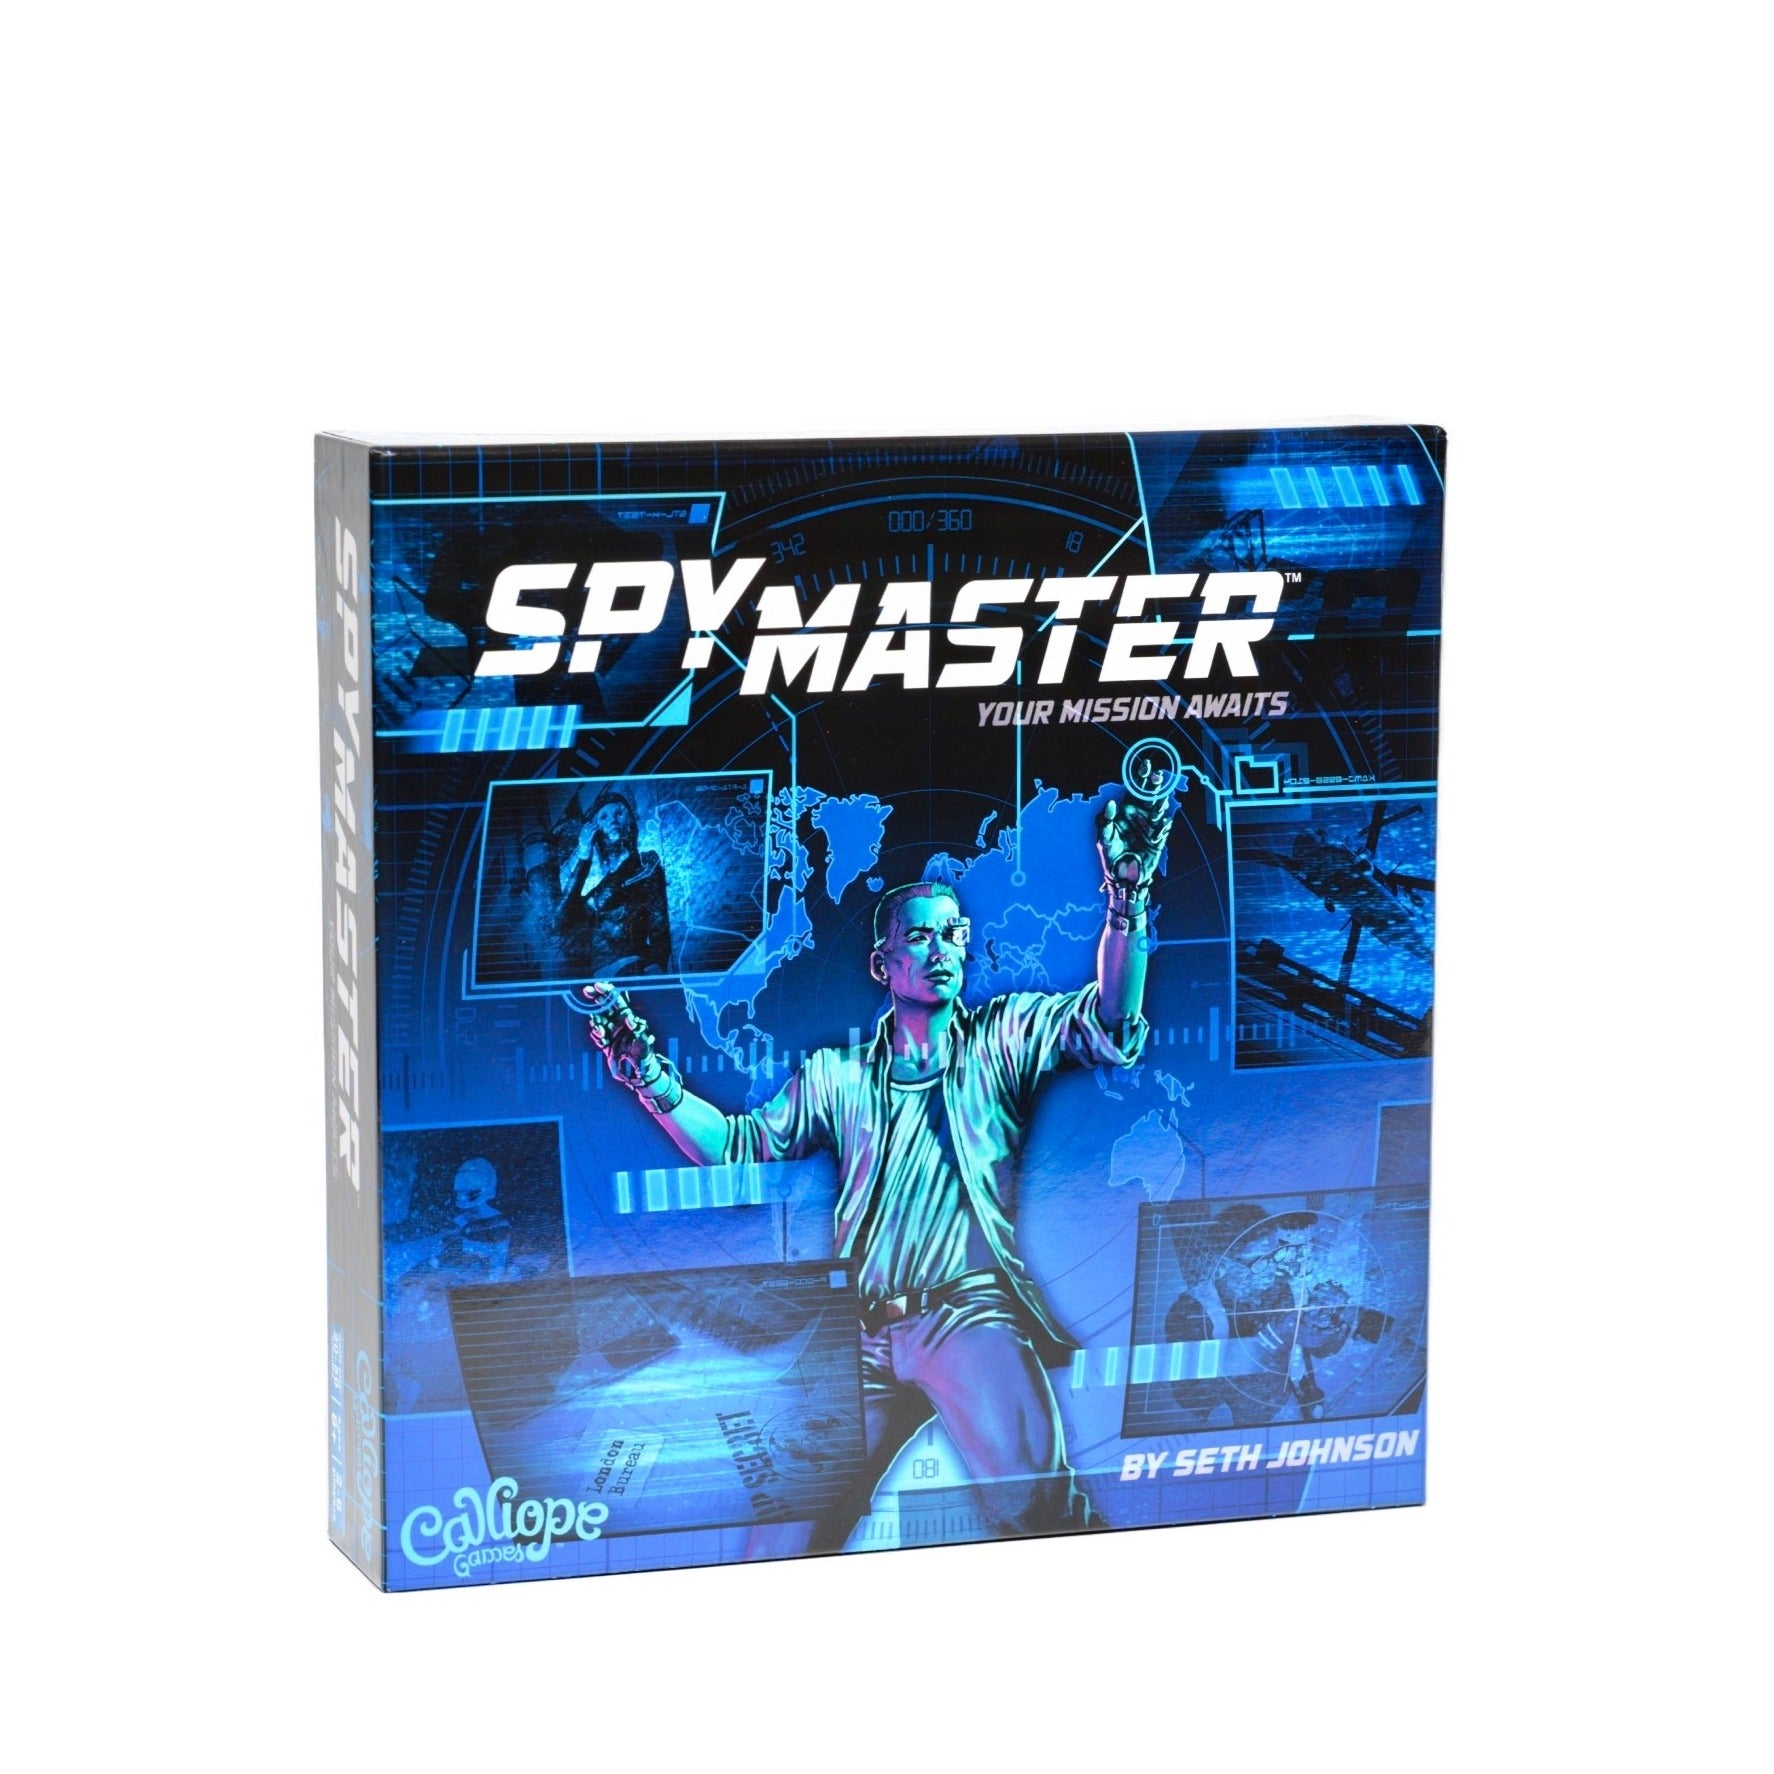 SPYMASTER - Spymaster: Your Mission Awaits board game, front of box view.